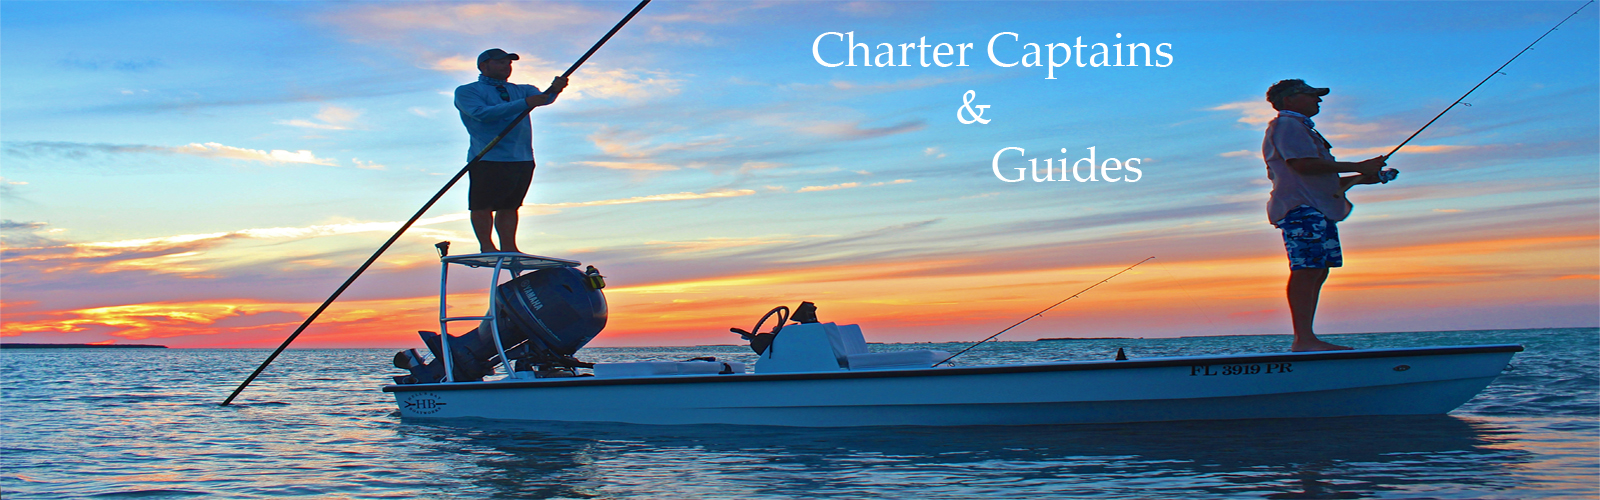 Charter captains and guides in Boca Grande Florida